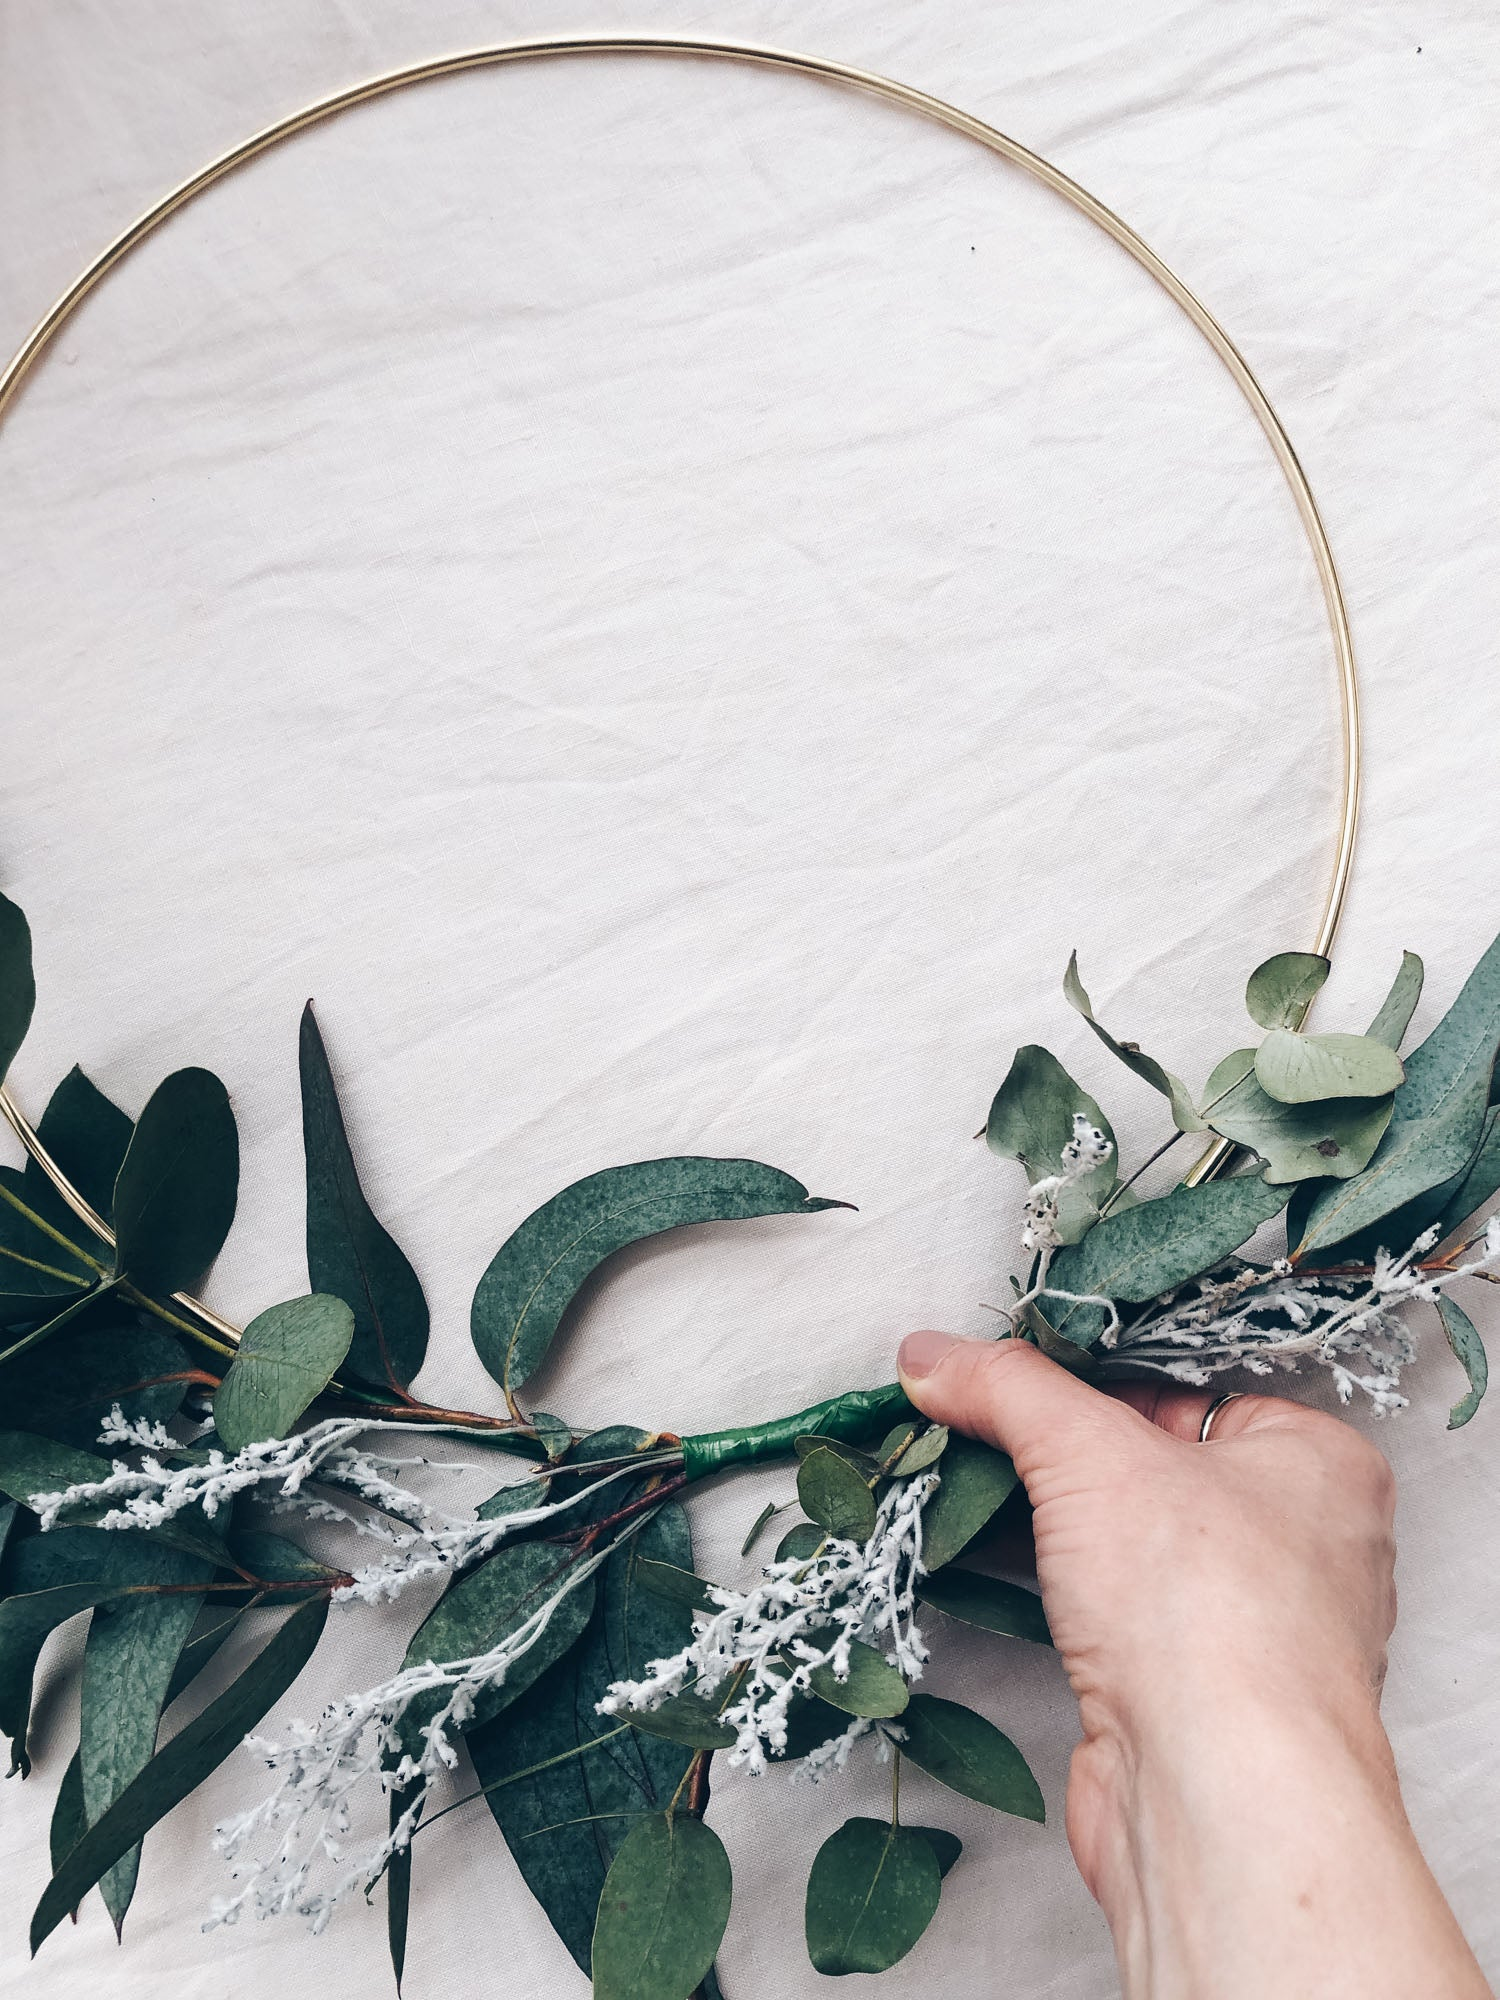 DIY Minimalist Christmas Wreath with Plyroom and Fowlers Flowers